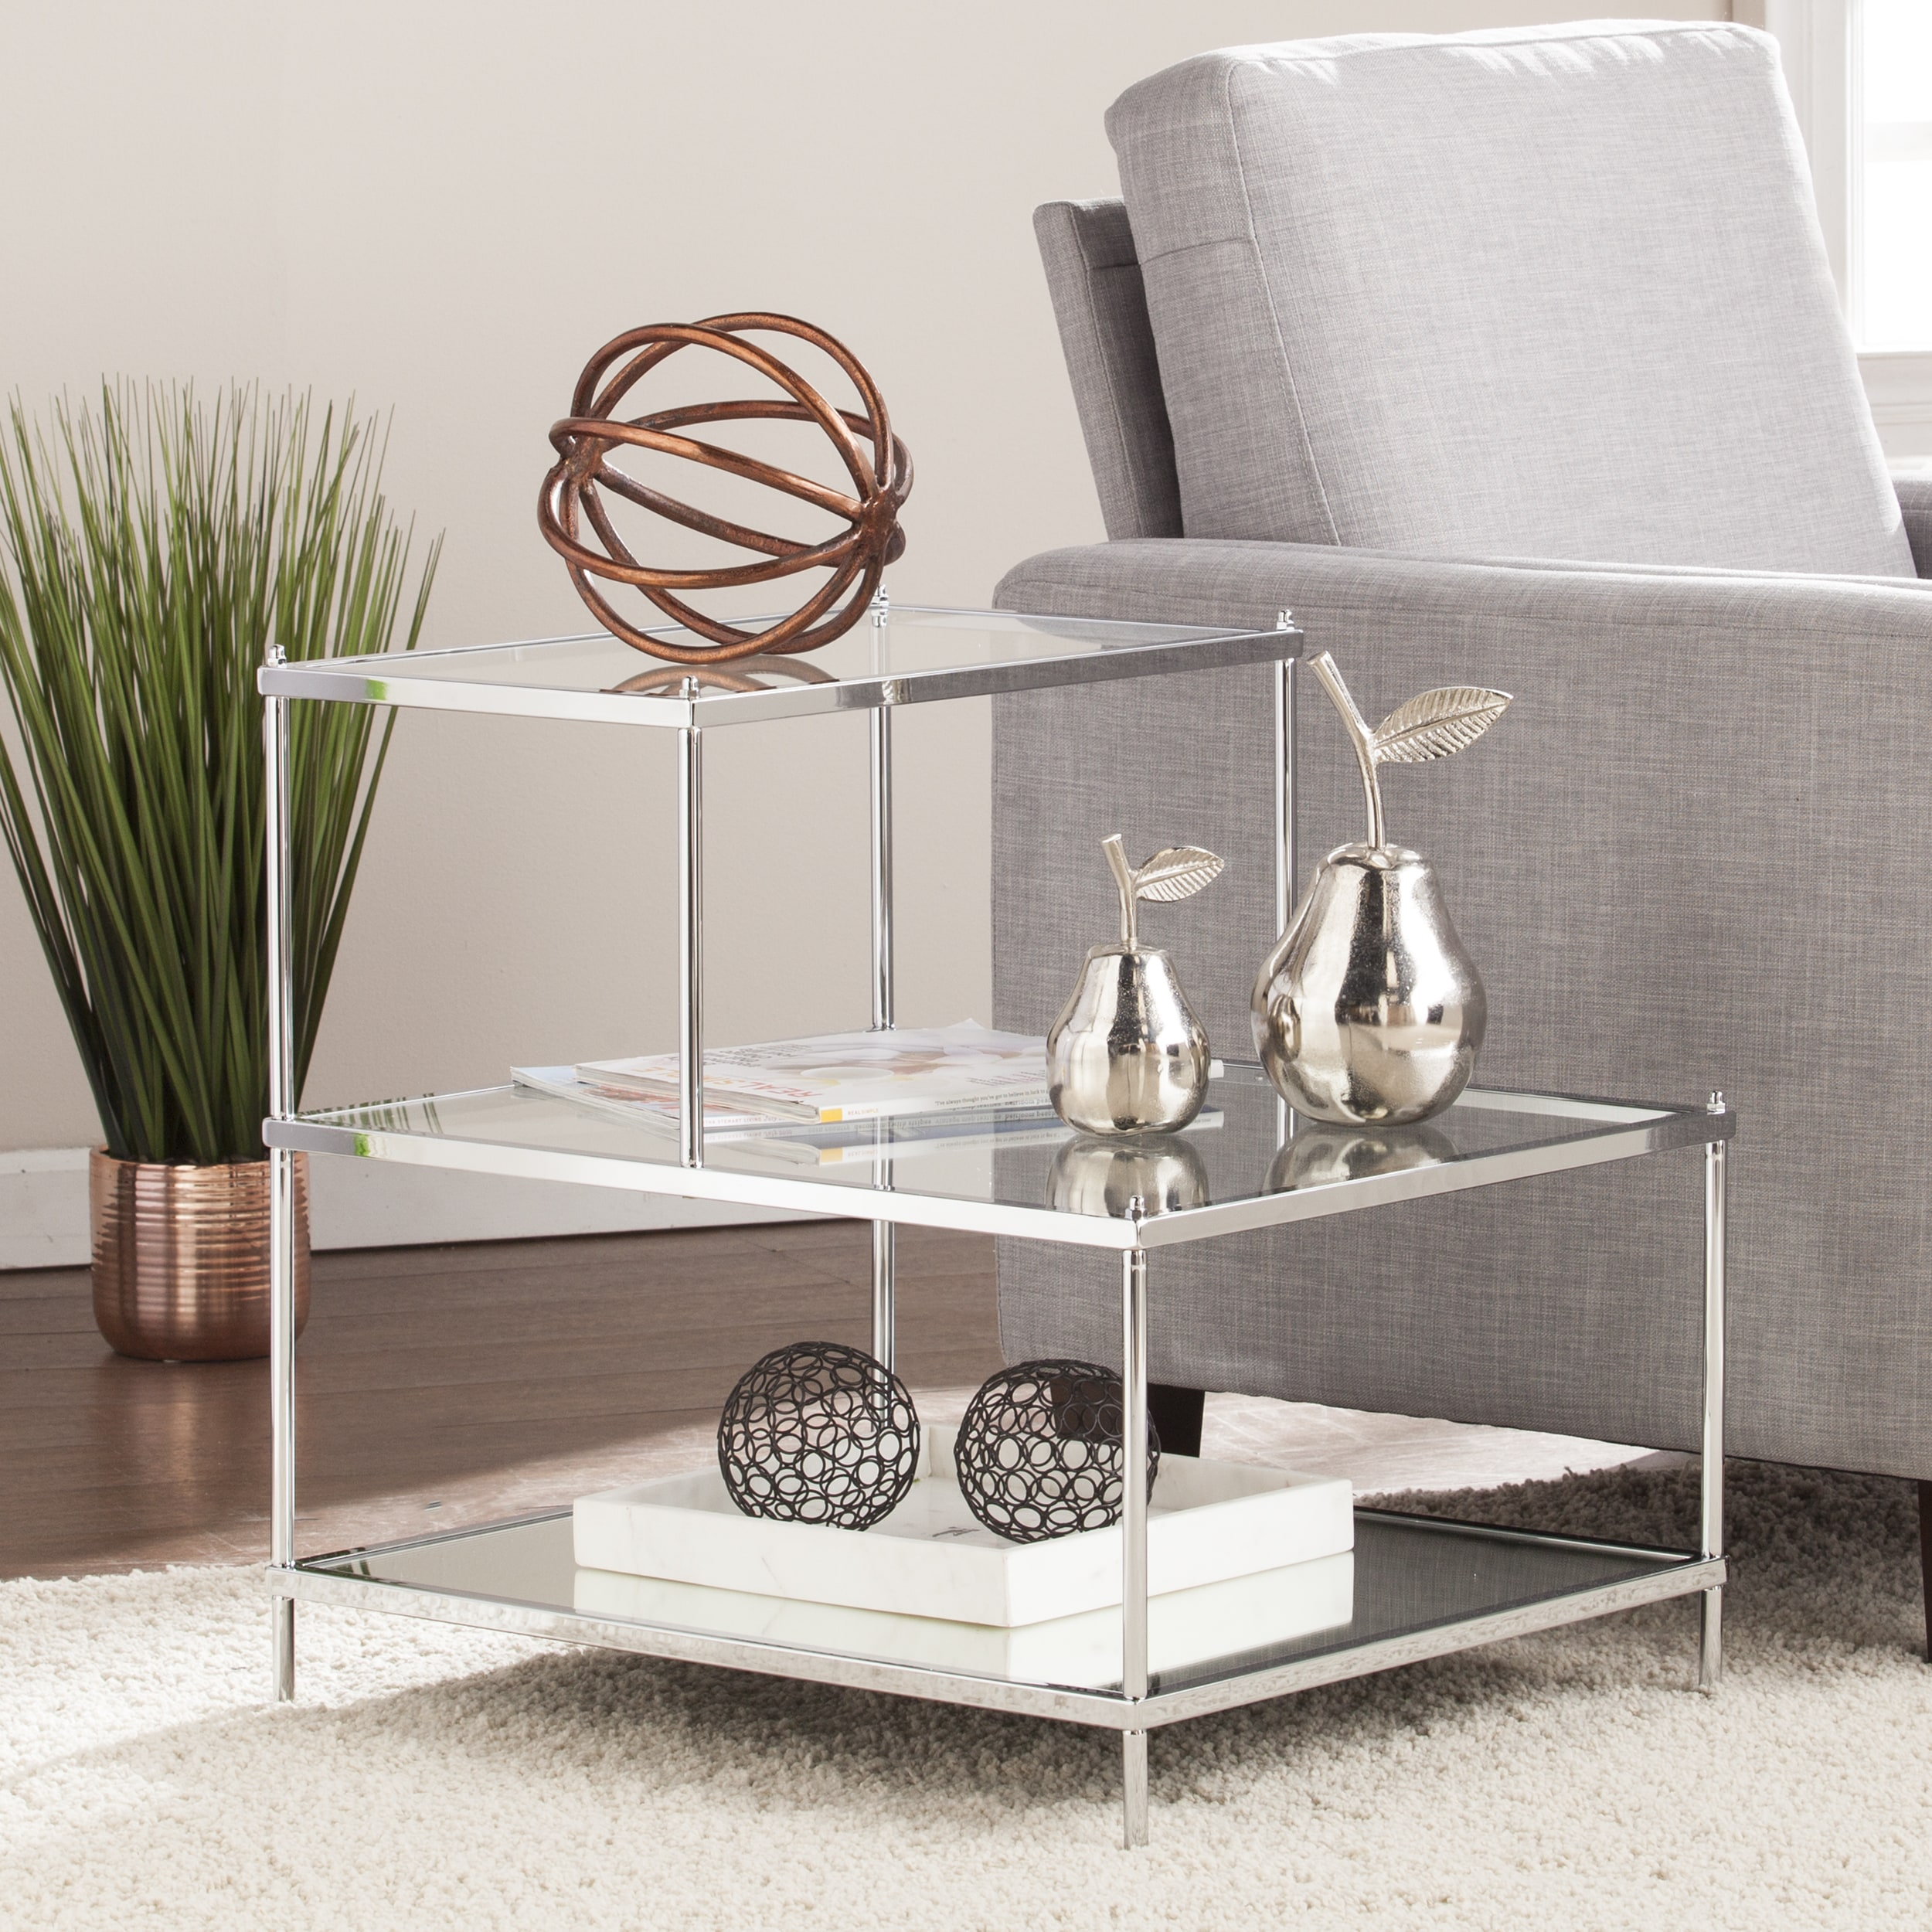 silver orchid olivia glam mirrored accent table chrome small lucite side round skirts decorator sauder furniture high and chairs recliner covers target backyard modern lamp